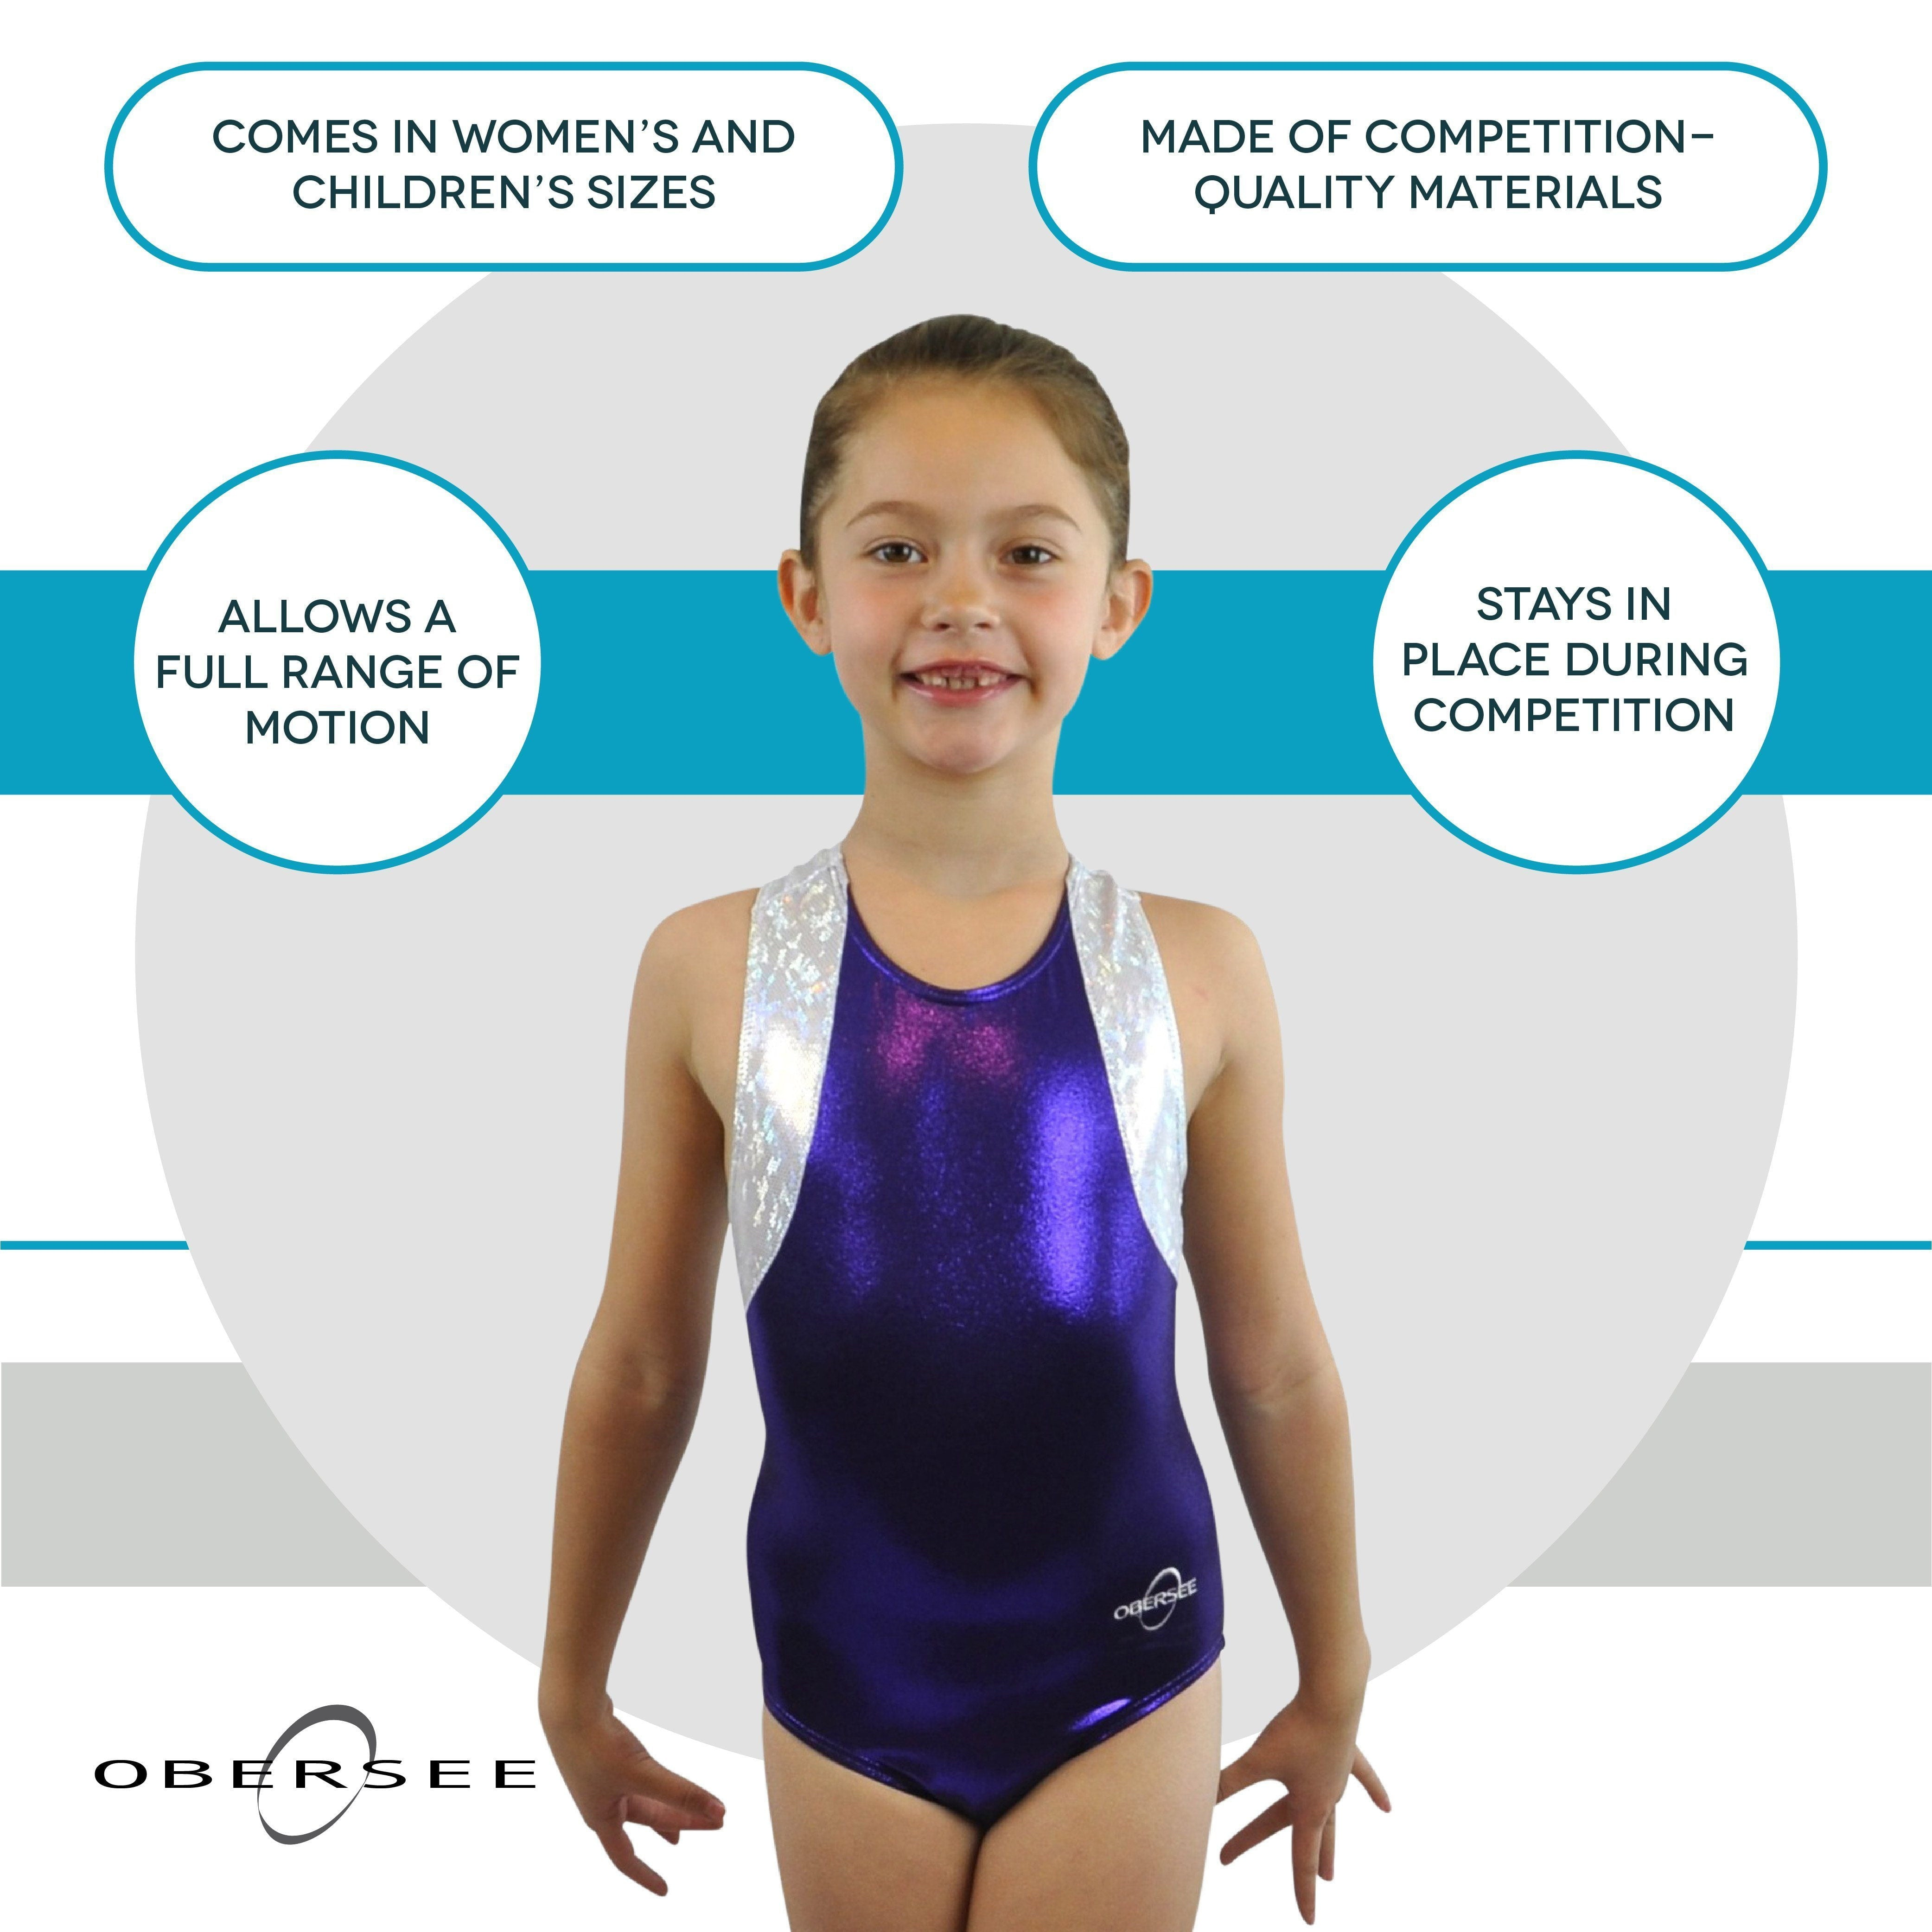 O3GL053 Obersee Girl's Girls Gymnastics Leotard - Cross Back Purple - Obersee